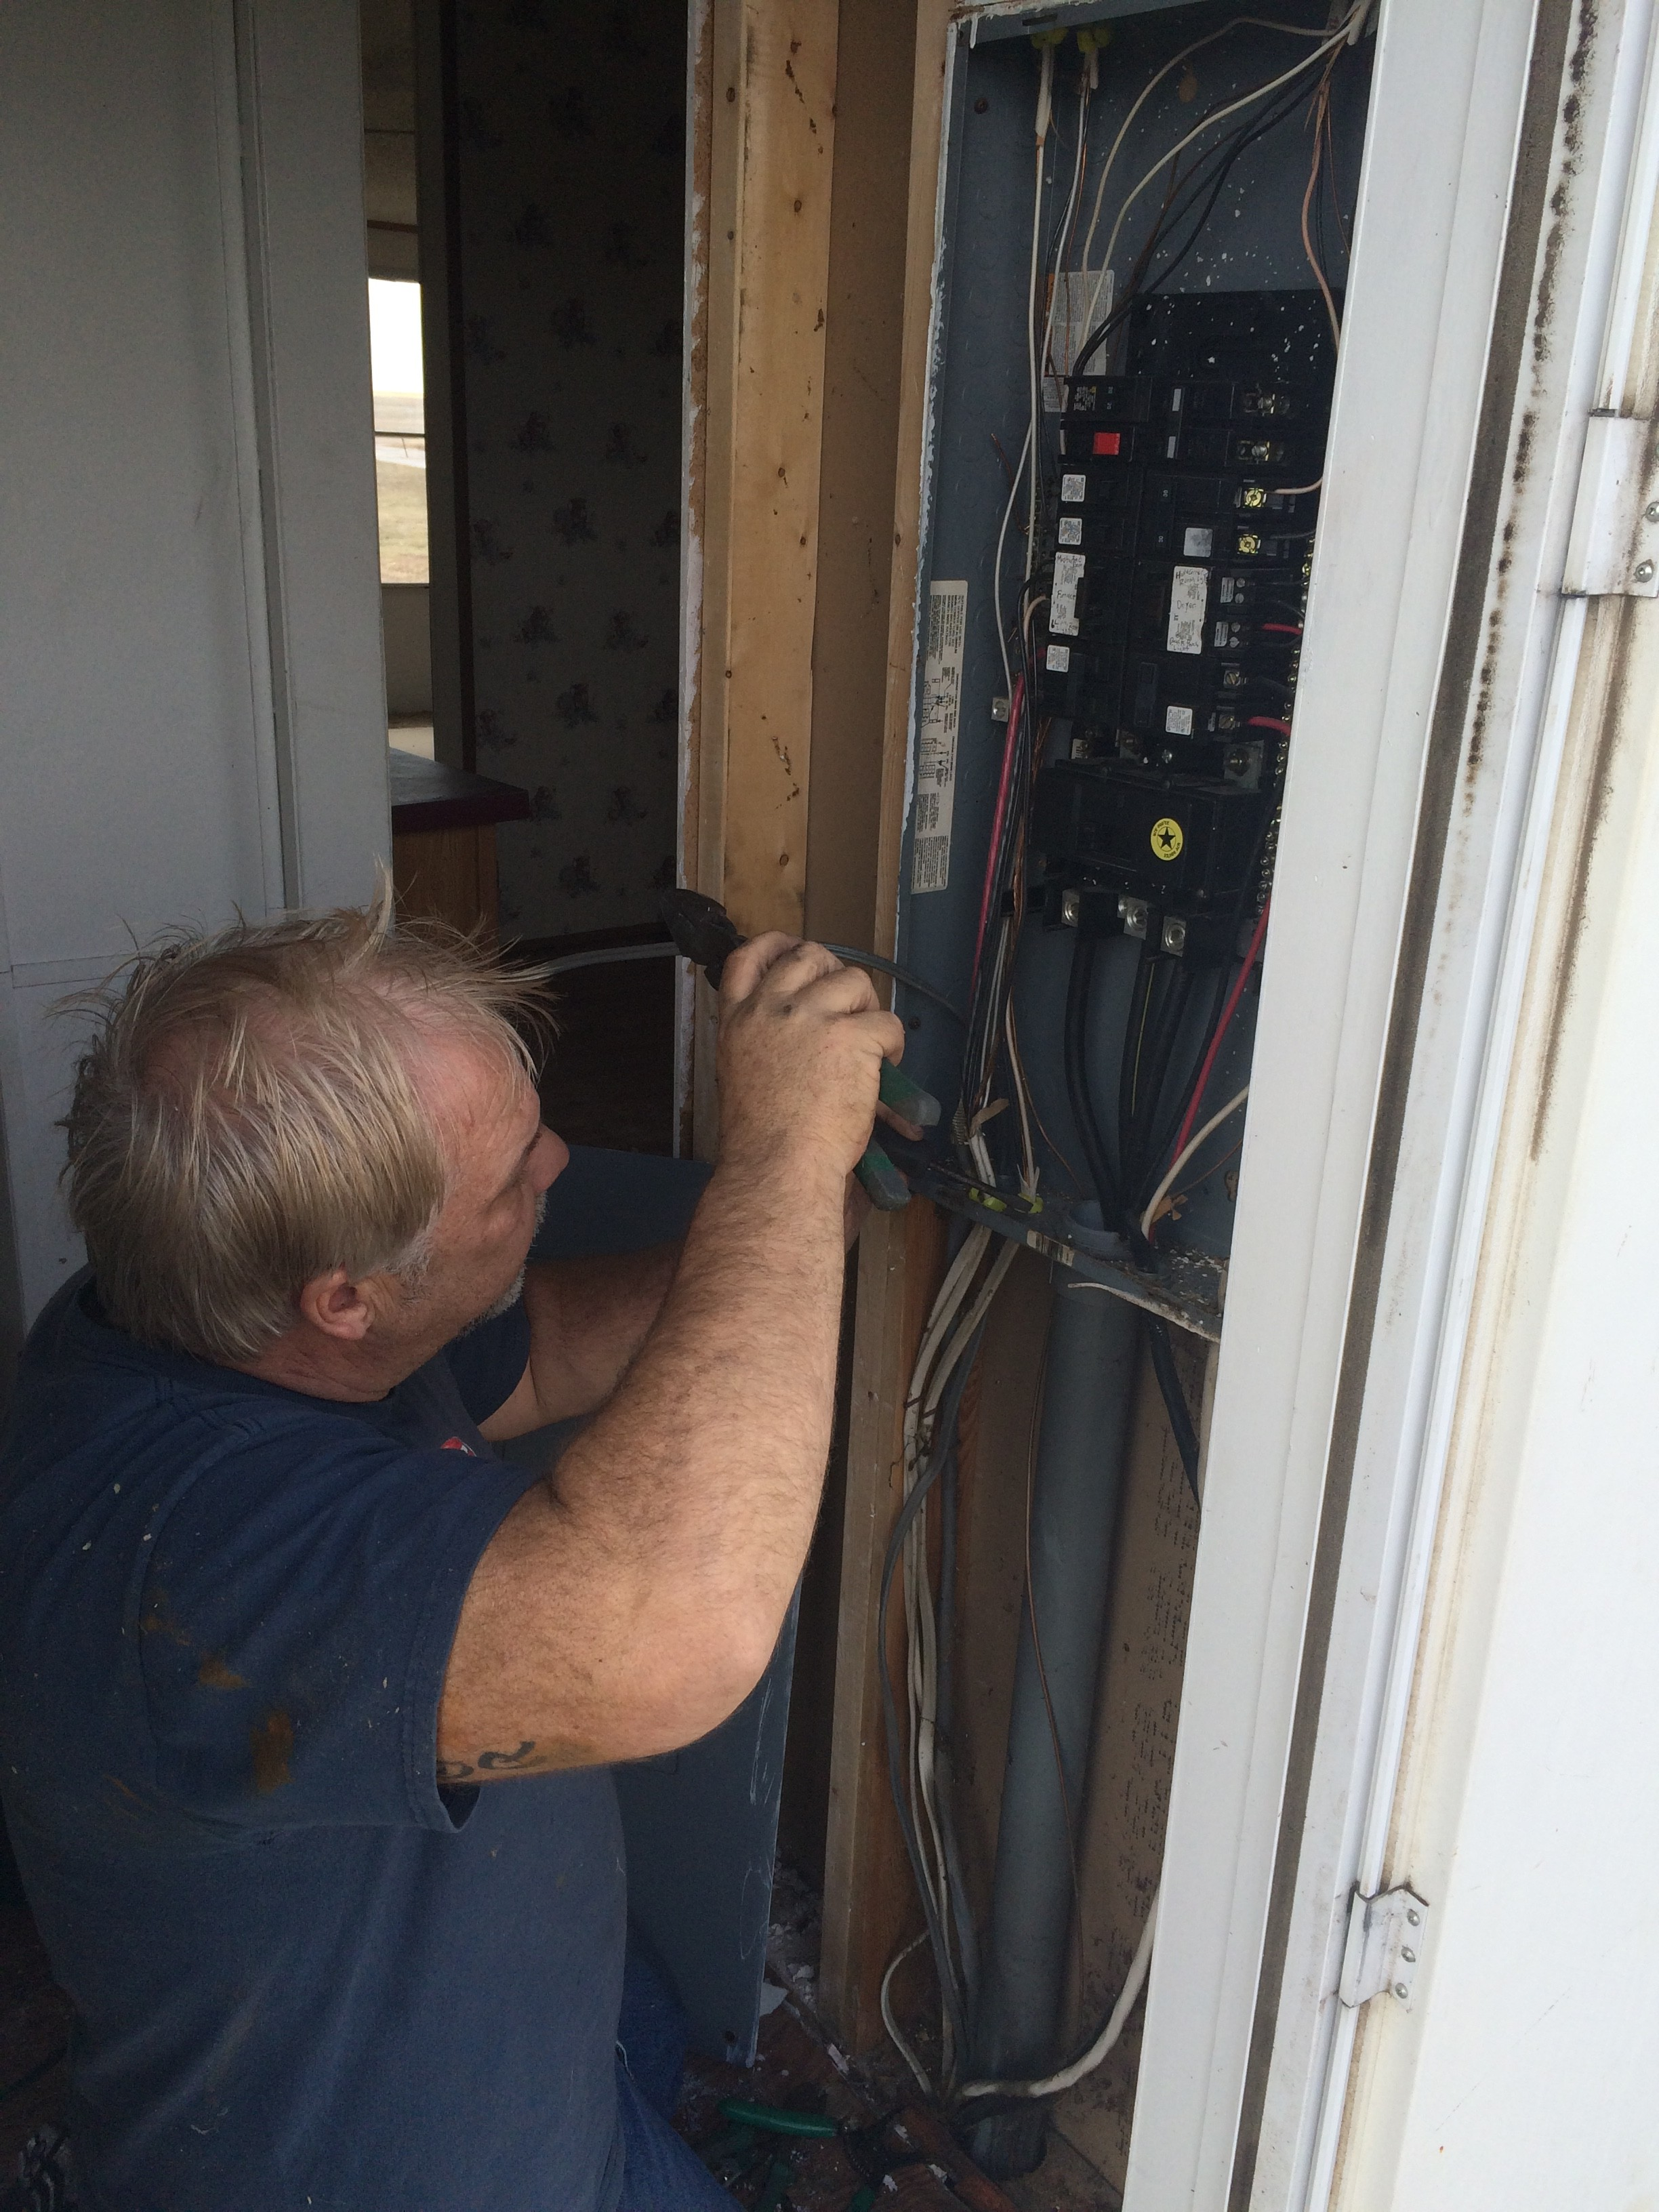 Residential Electrician Arlington Tx Fort Worth Jb Electrical Troubleshooting House Wiring